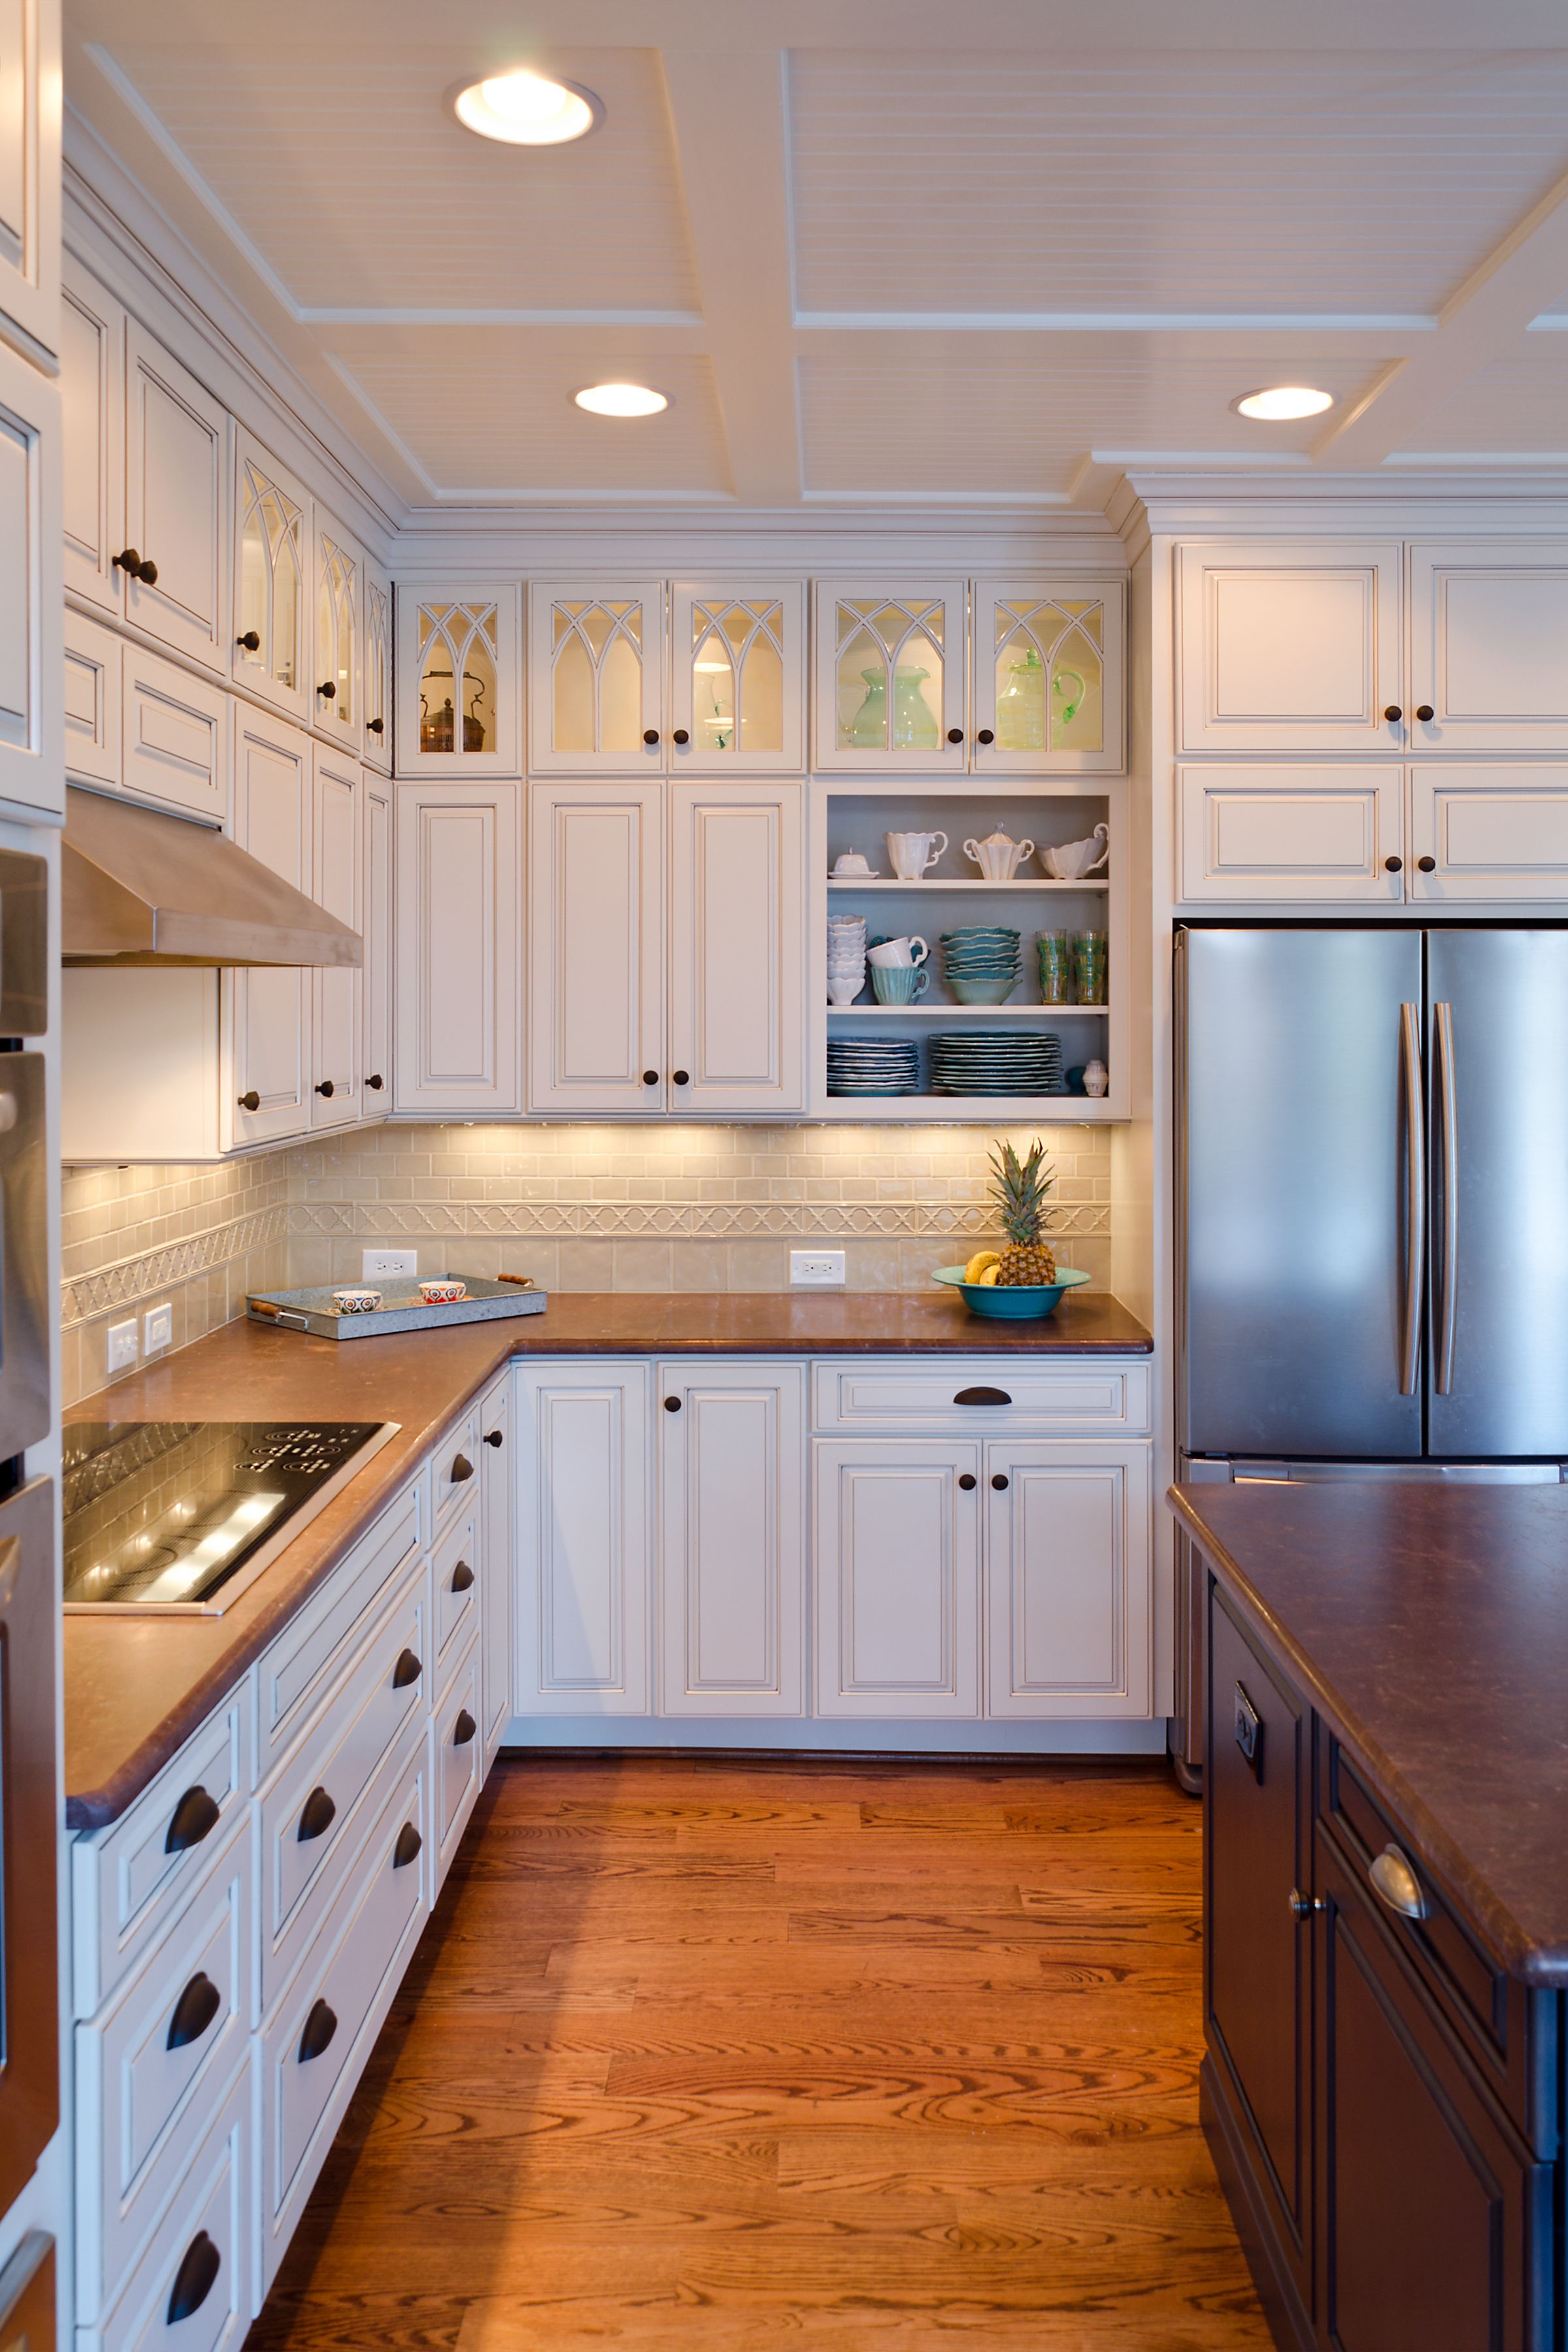 Kitchen Cabinets To Ceiling With Glass I Can 39t Decide Which Element I Love More The Decorative